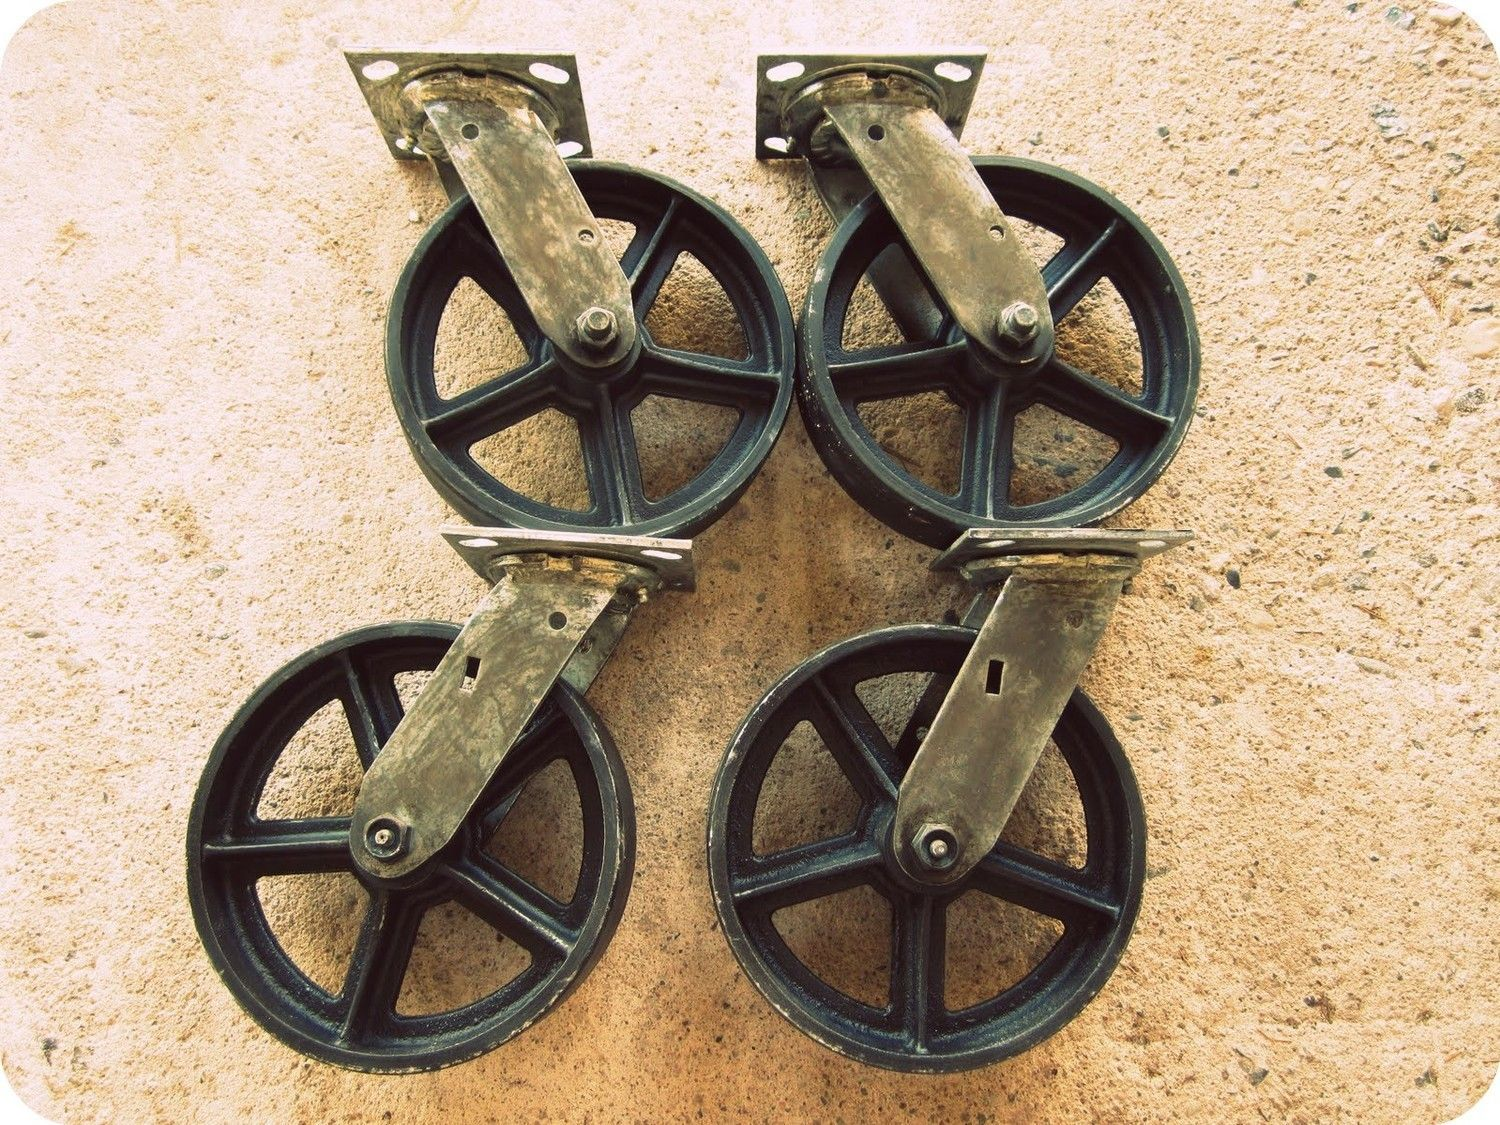 Factory caster vintage industrial furniture - Vintage Swiveling 8 Inch Caster Wheels Antique Casters Set Of 4 8tm